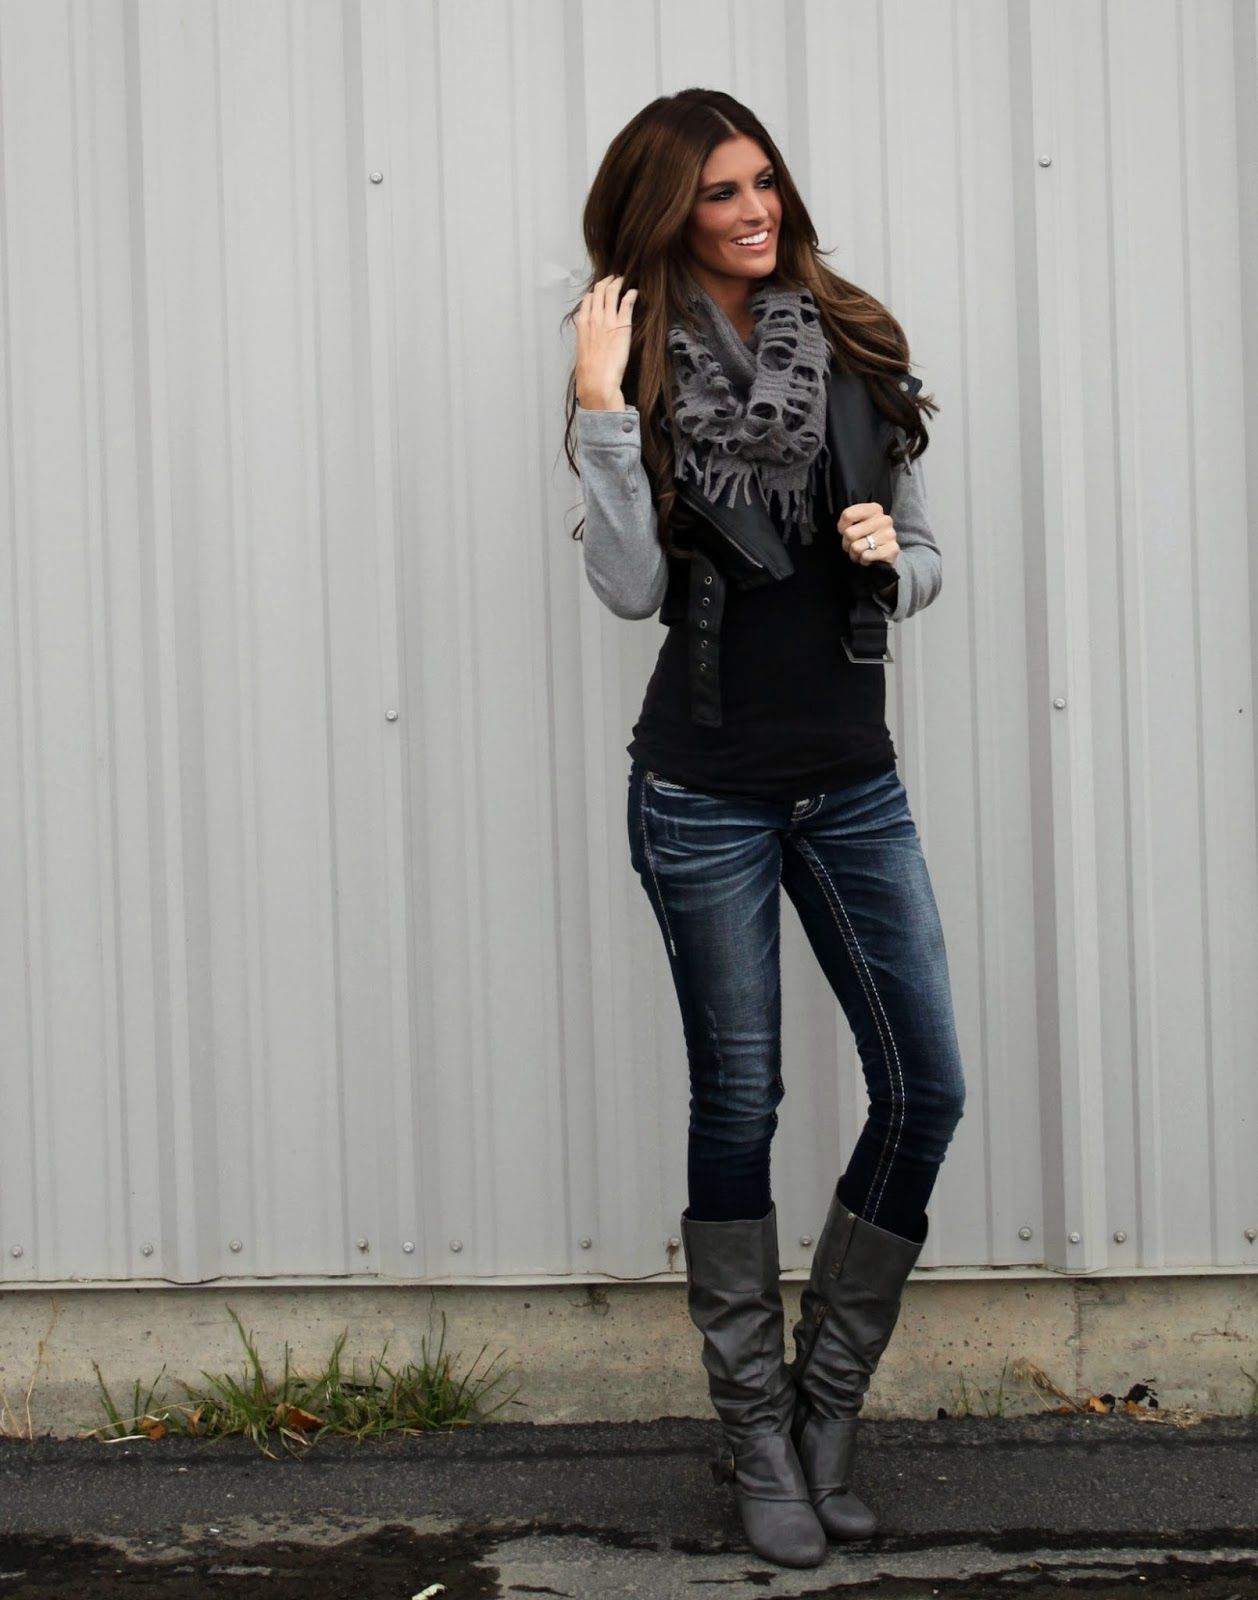 Black jacket or hoodie with grey sleeves dark blue skinny jeans grey tall leather boots and ...